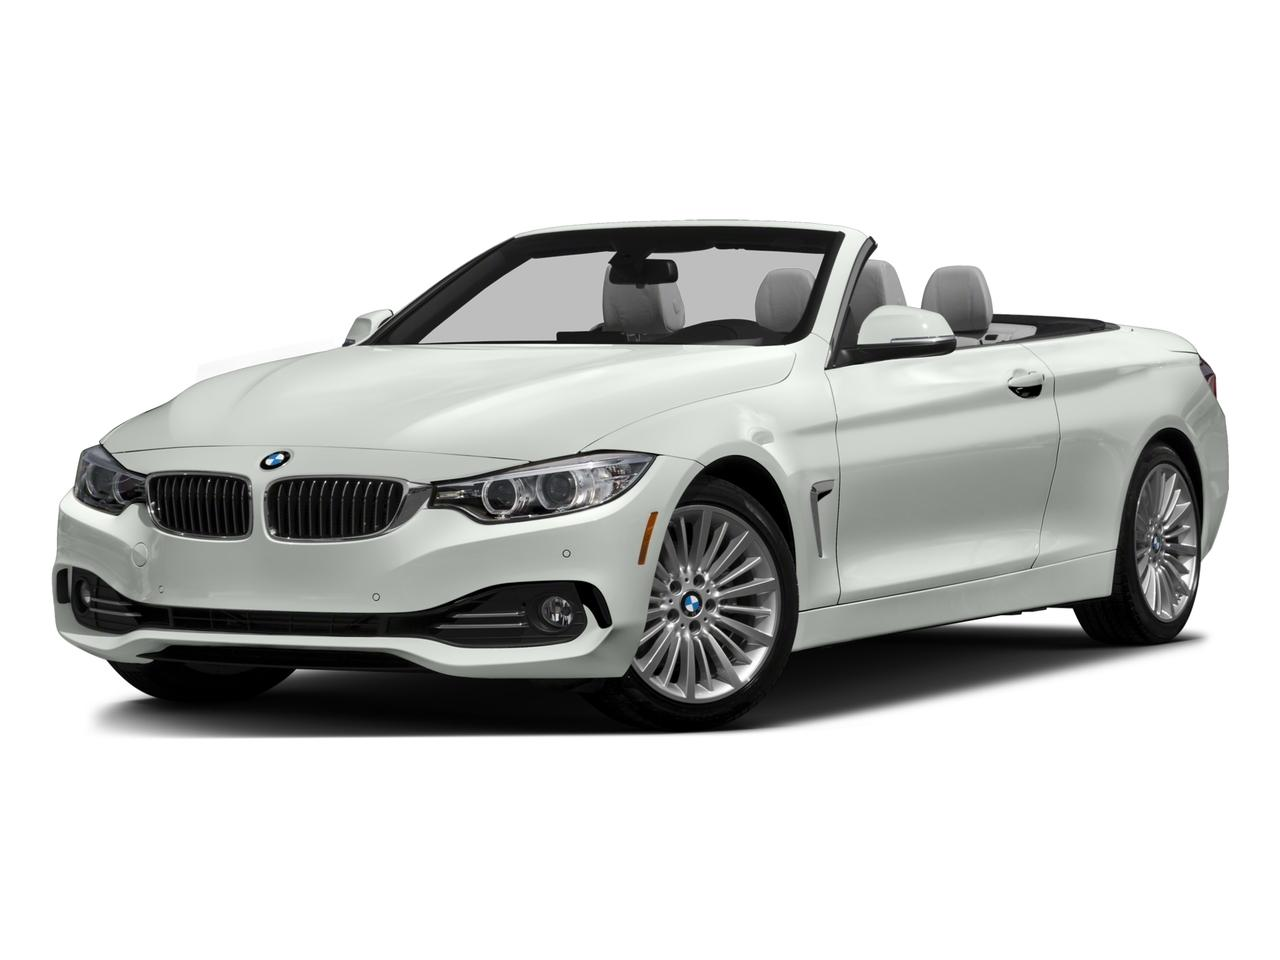 2016 BMW 428i Vehicle Photo in Smyrna, GA 30080